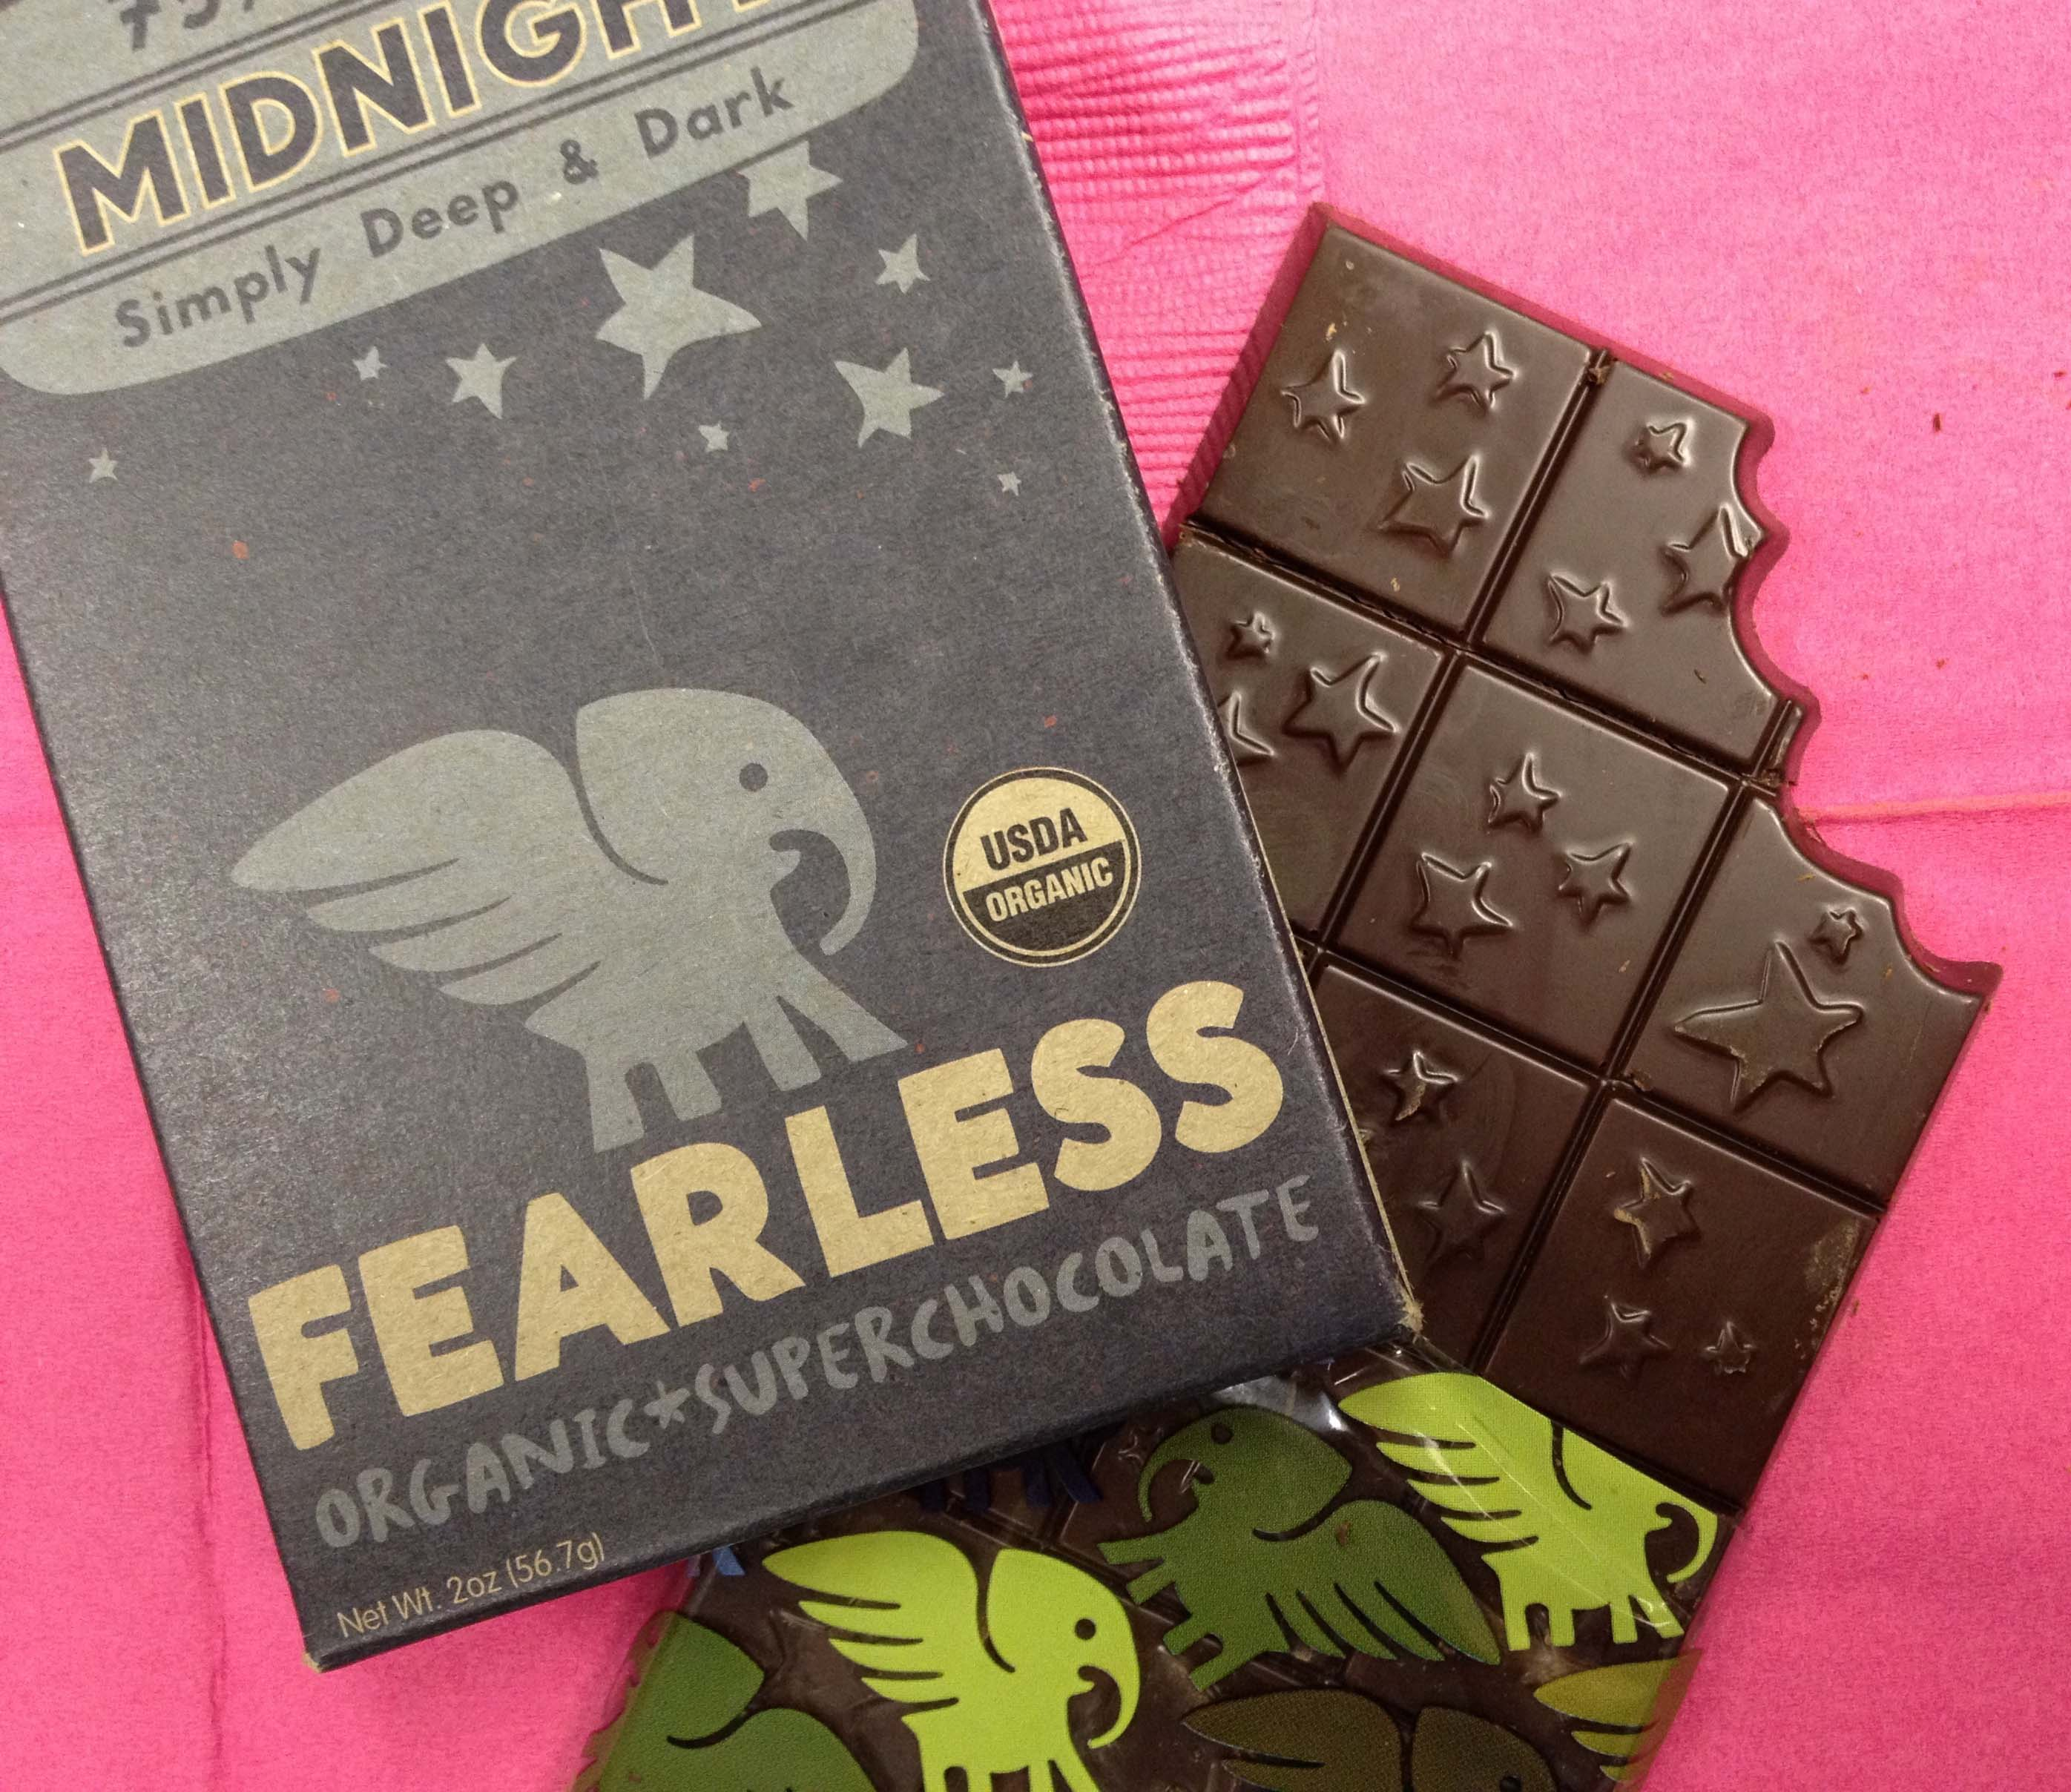 Fearless Chocolate - MB Piland Inside-Out Blog